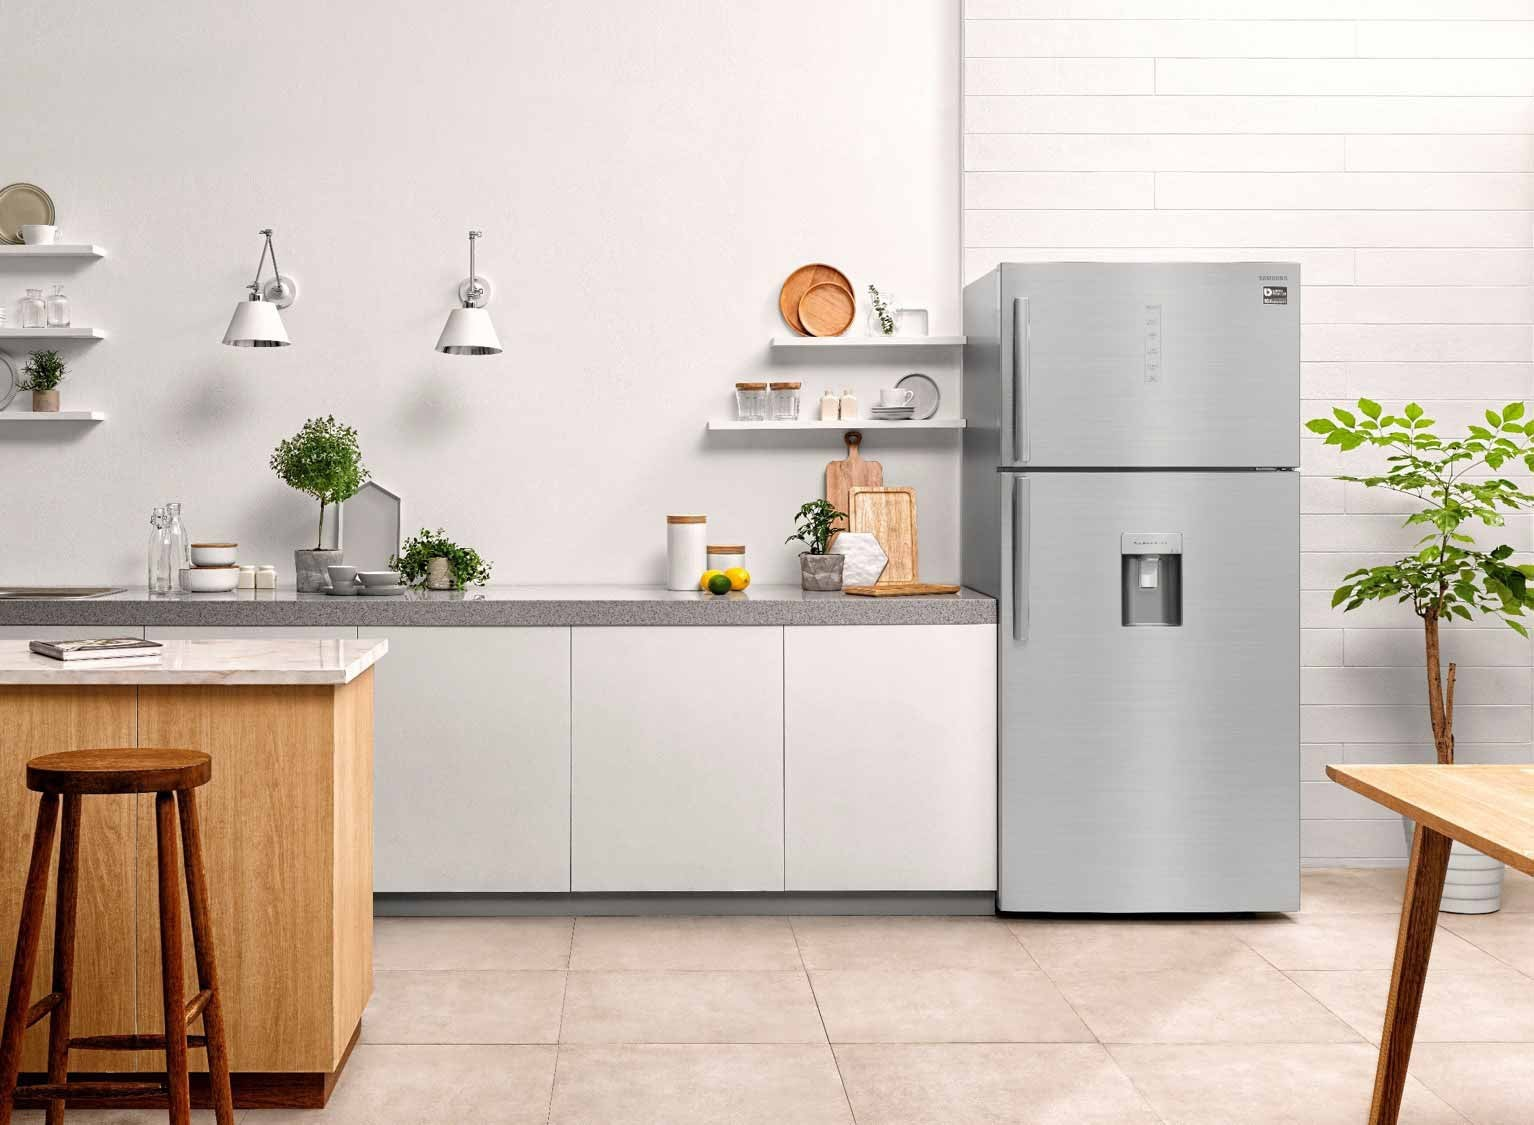 Samsung announces the new Twin cooling fridge that keeps food fresh for a much longer time than a regular fridge